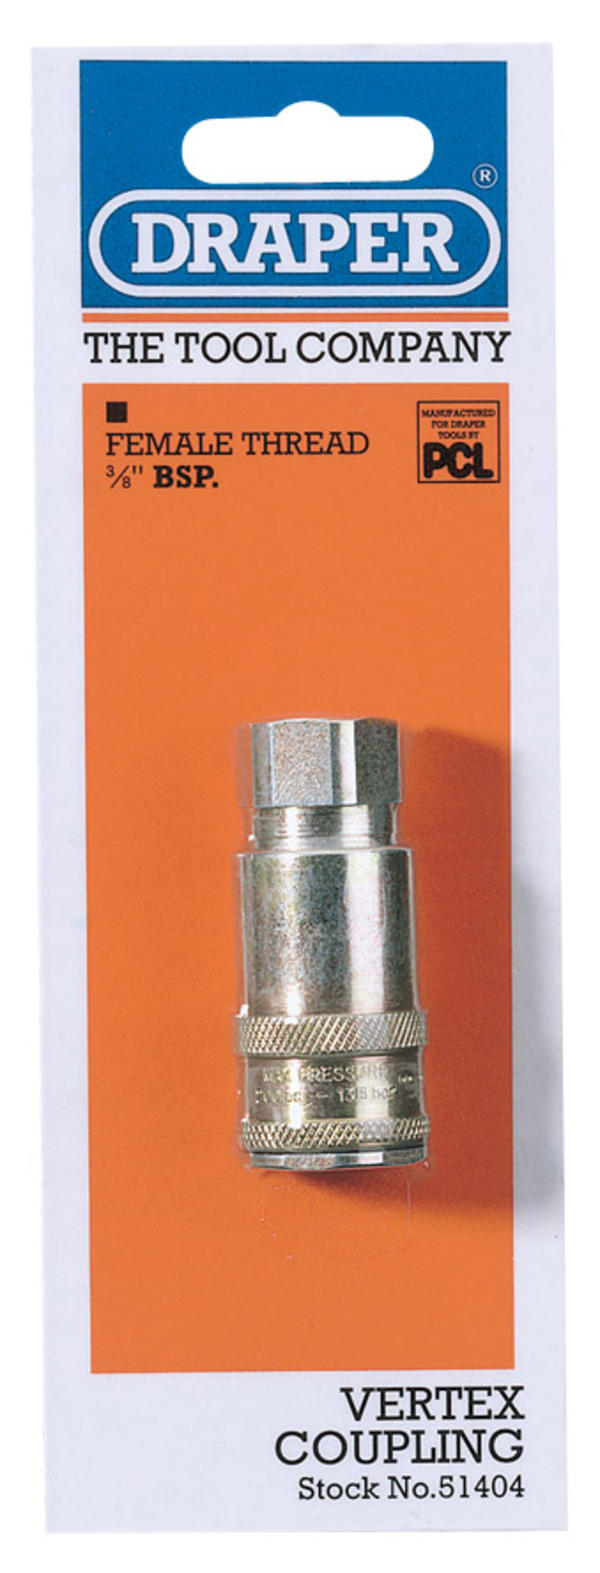 Draper 51404 A91EF02 3/8 BSP Taper Female Thread Vertex Air Coupling Thumbnail 1